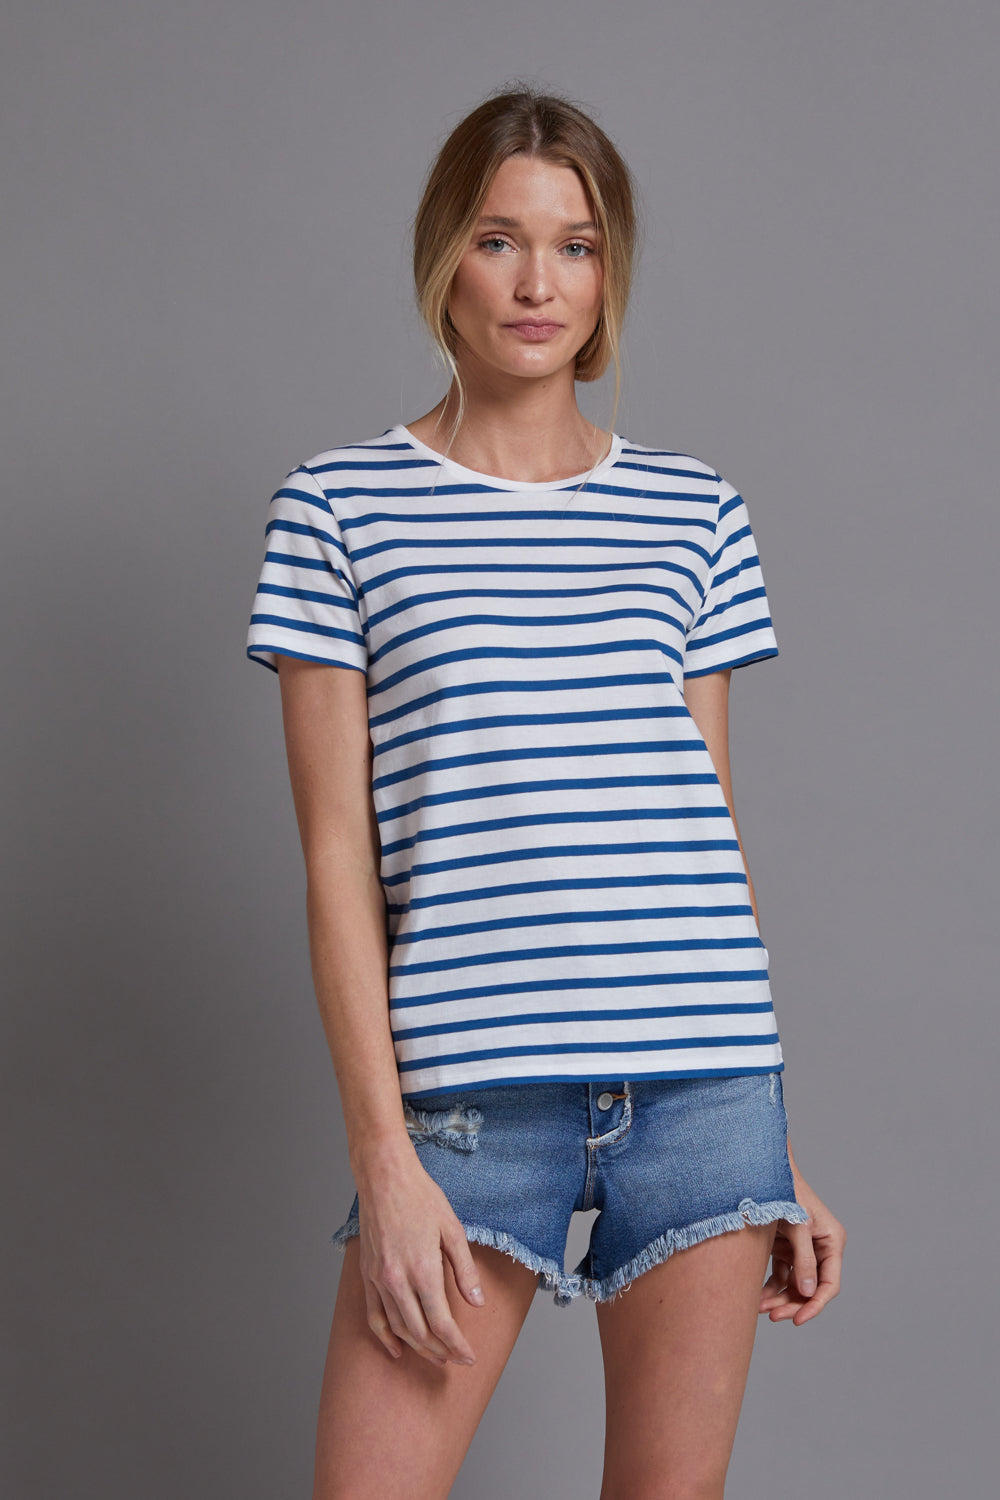 Majestic Short Sleeve Cotton Striped Crewneck in Blanc/Notte